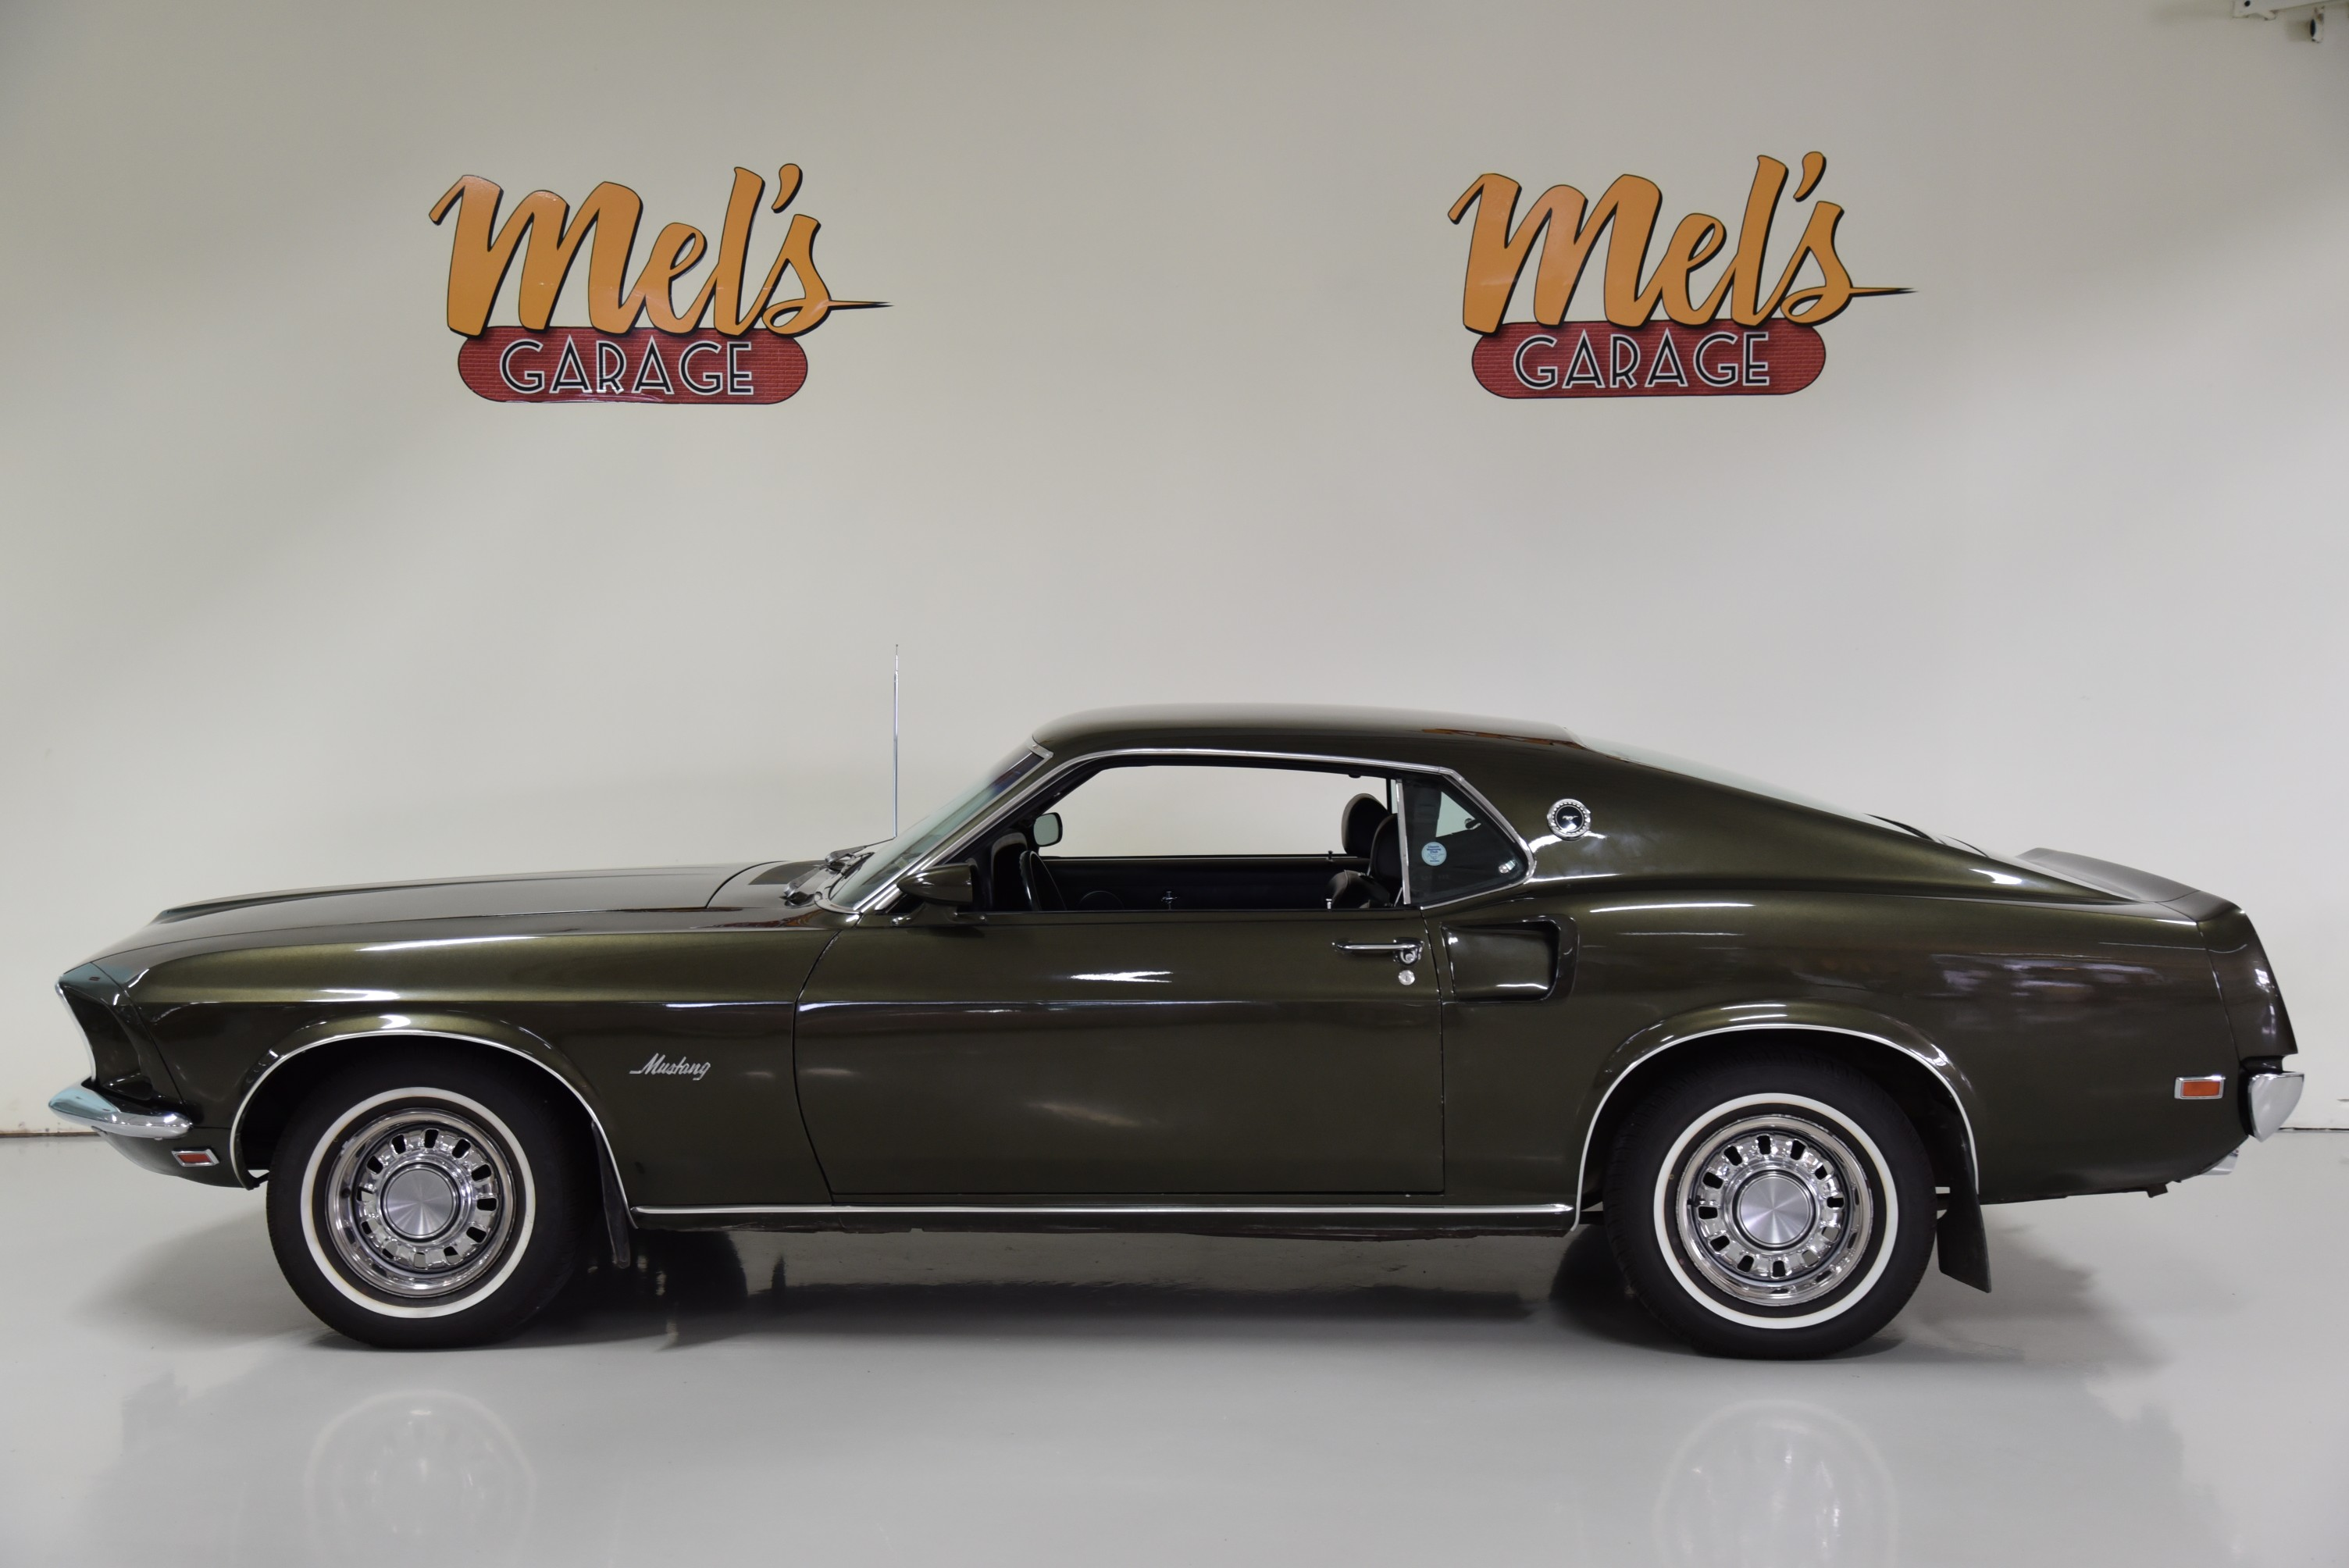 Ford mustang fastback coupe 63a 1969 såld mels garage classic cars coffee shop